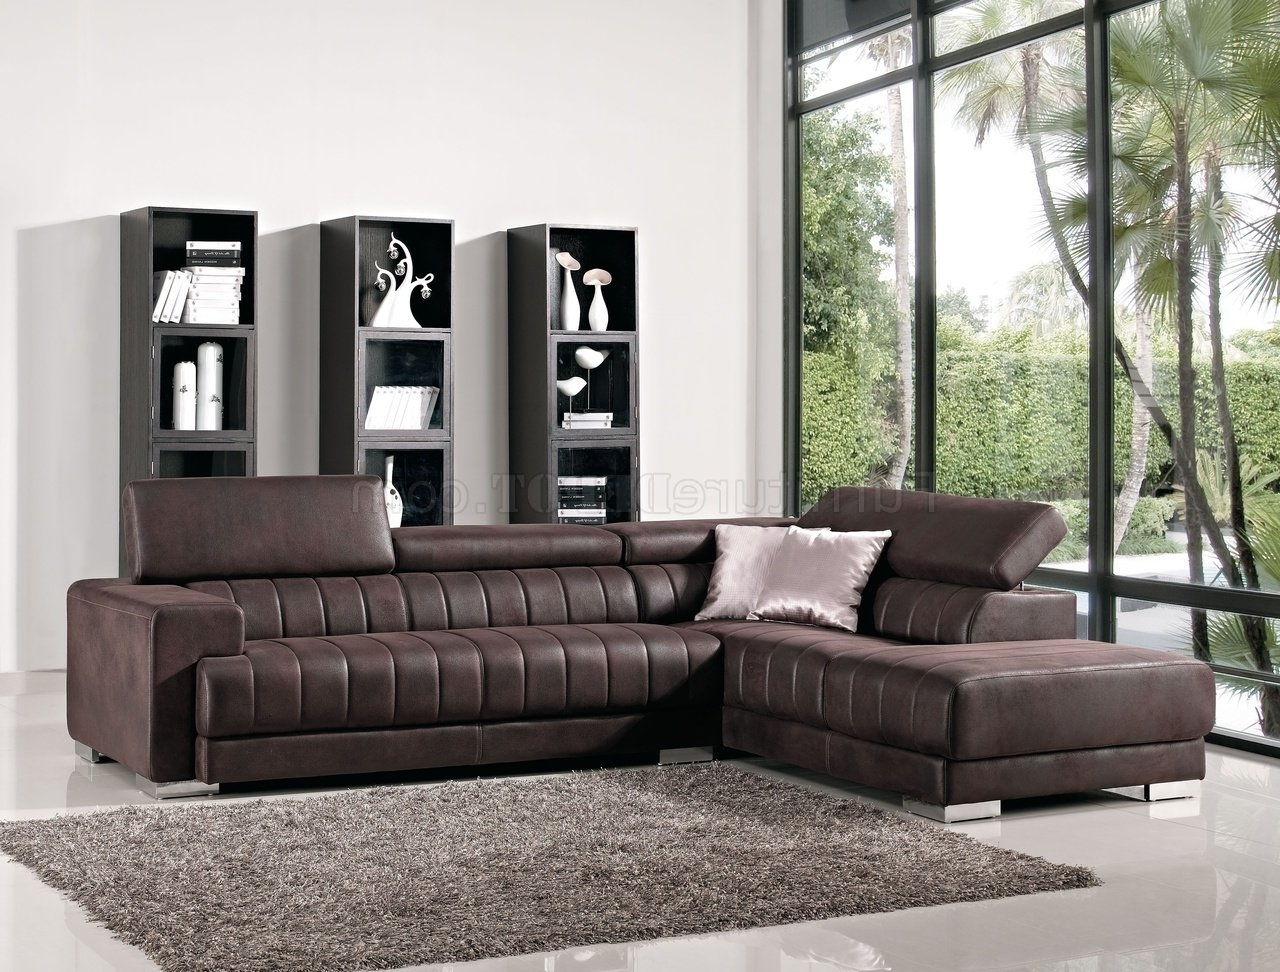 Contemporary Fabric Sofas With Regard To Preferred Brown Fabric Modern Sectional Sofa W/adjustable Headrest (View 9 of 20)